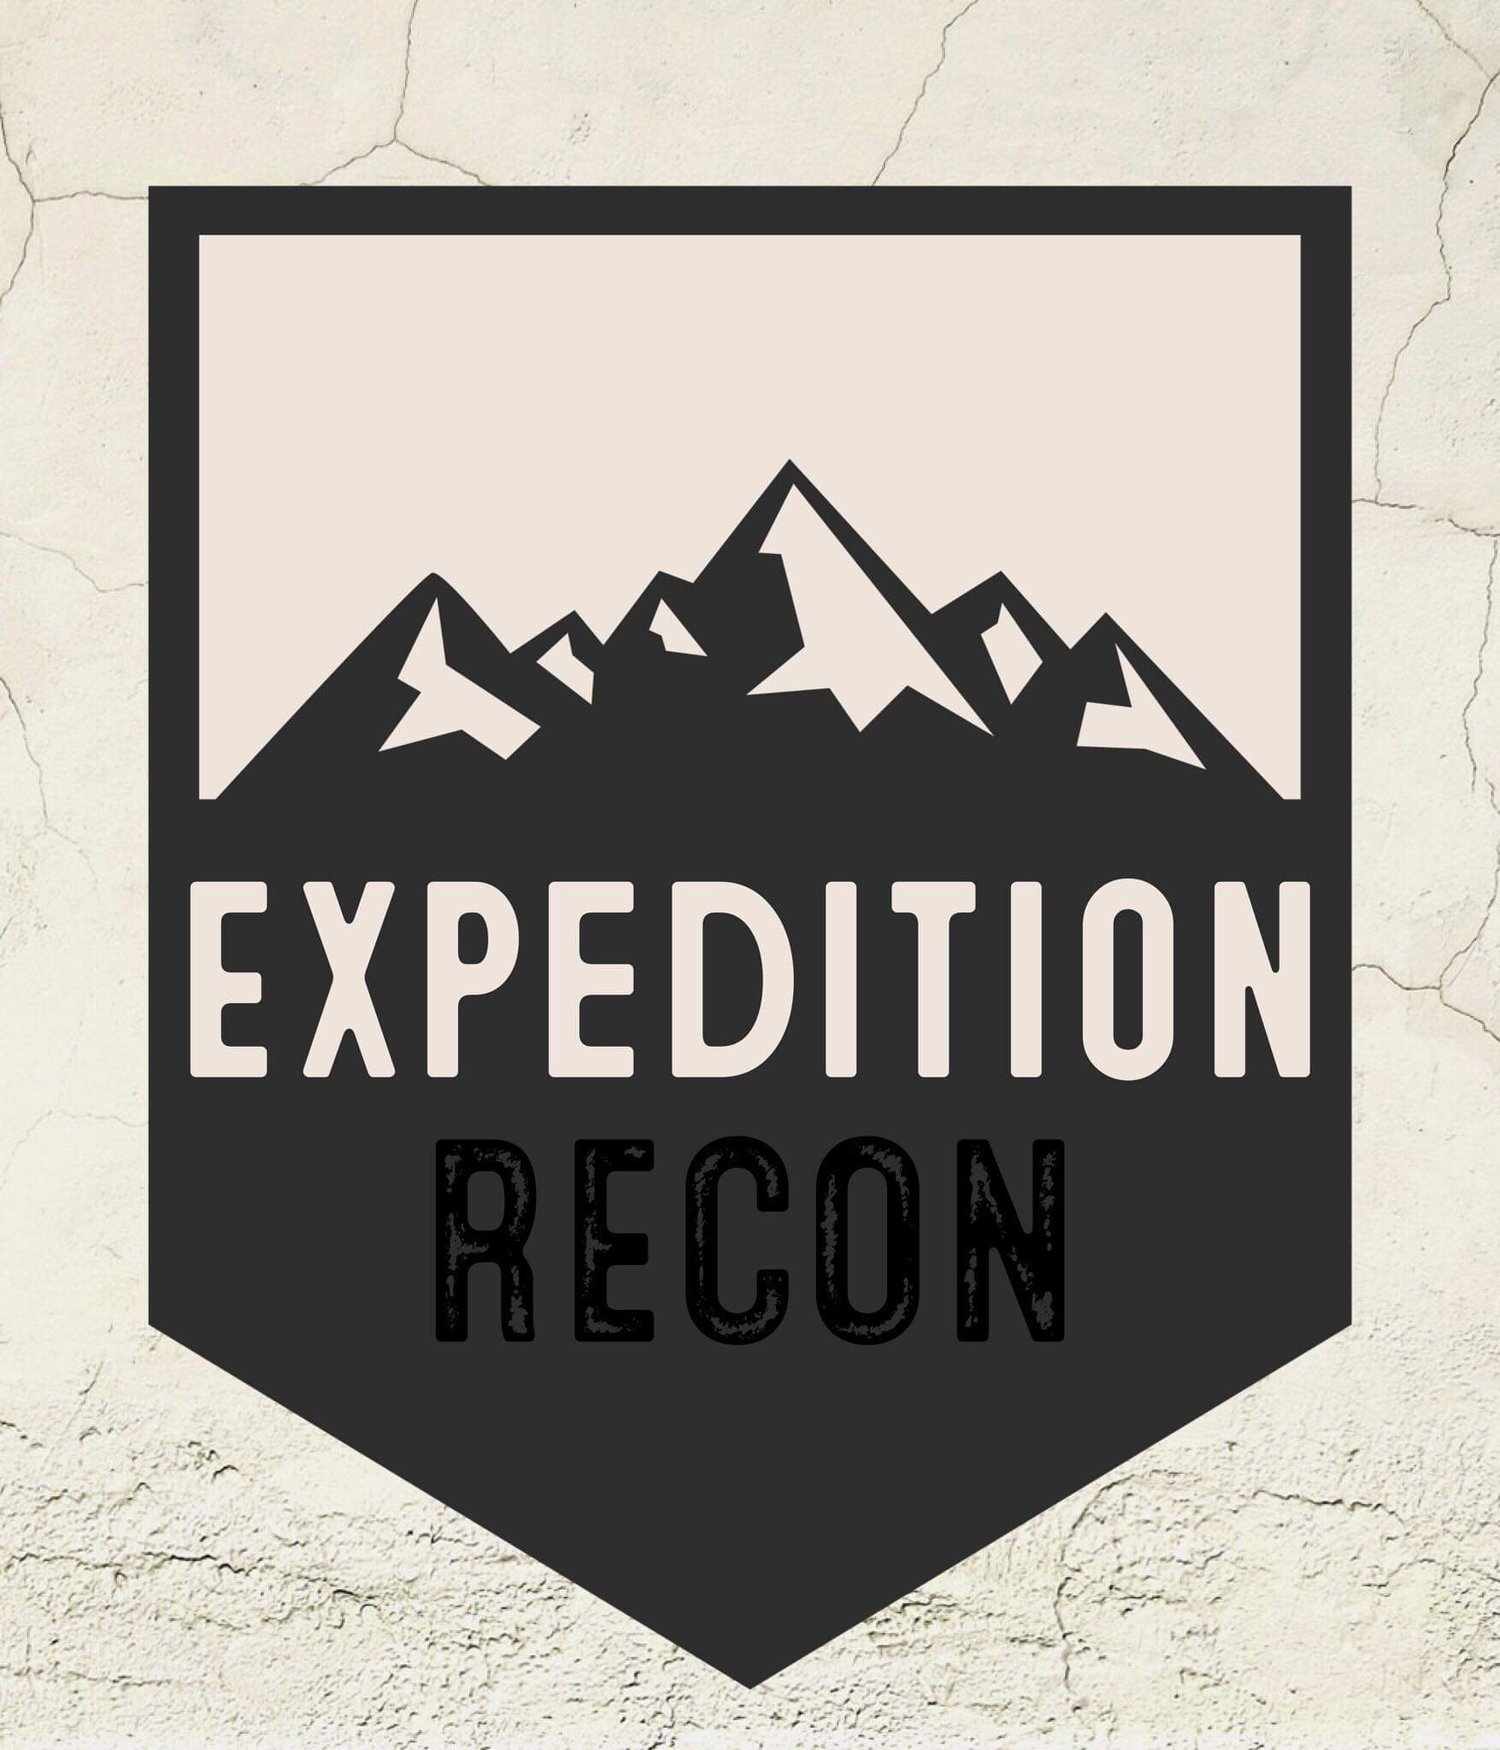 Expedition Recon